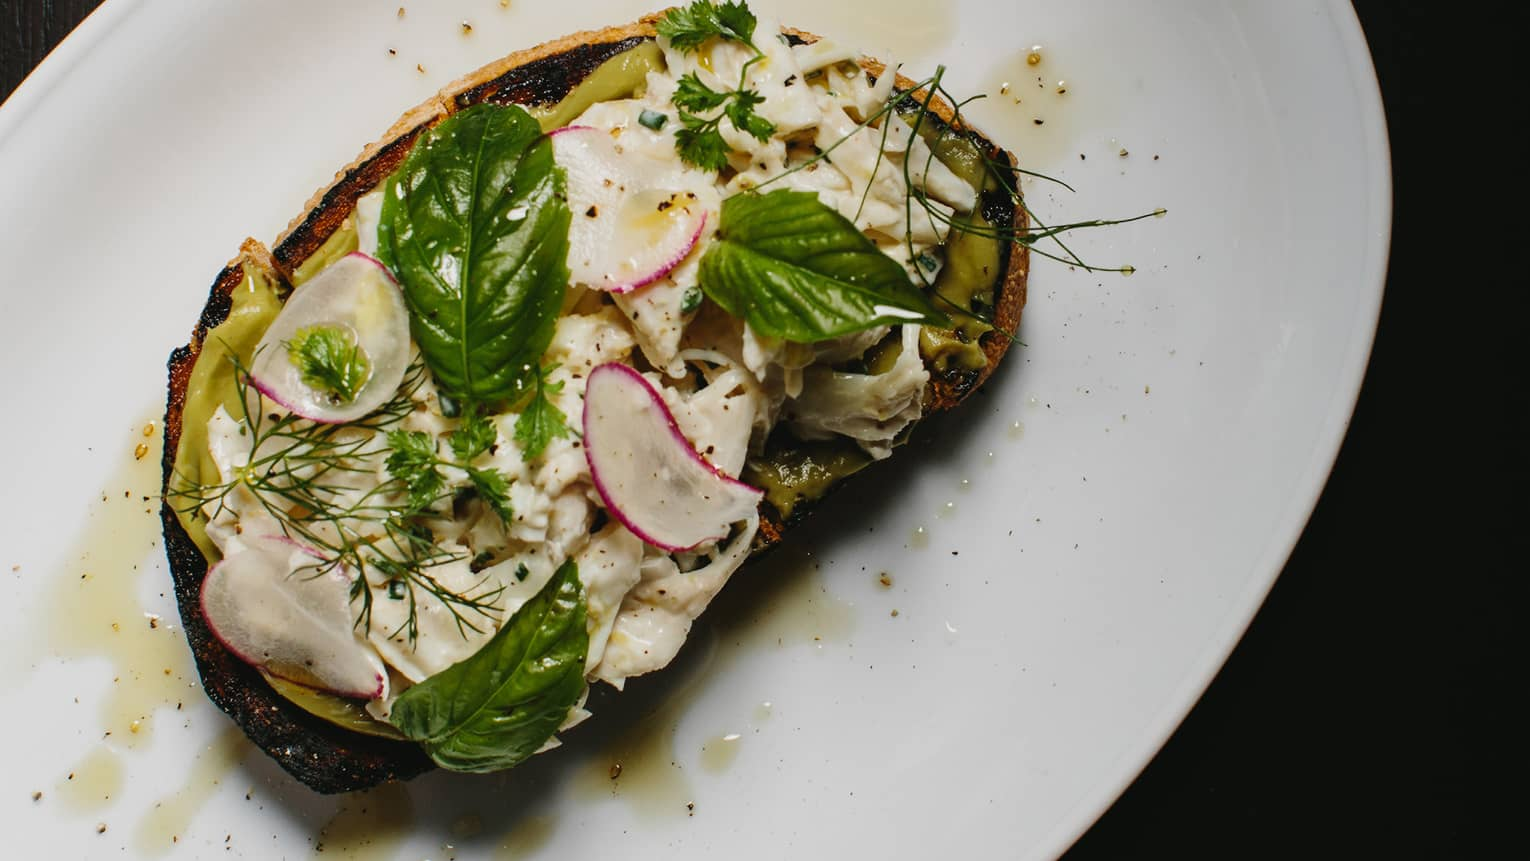 Crab Toast Avocado coulis, rooftop garden herbs and radish on toast on plate